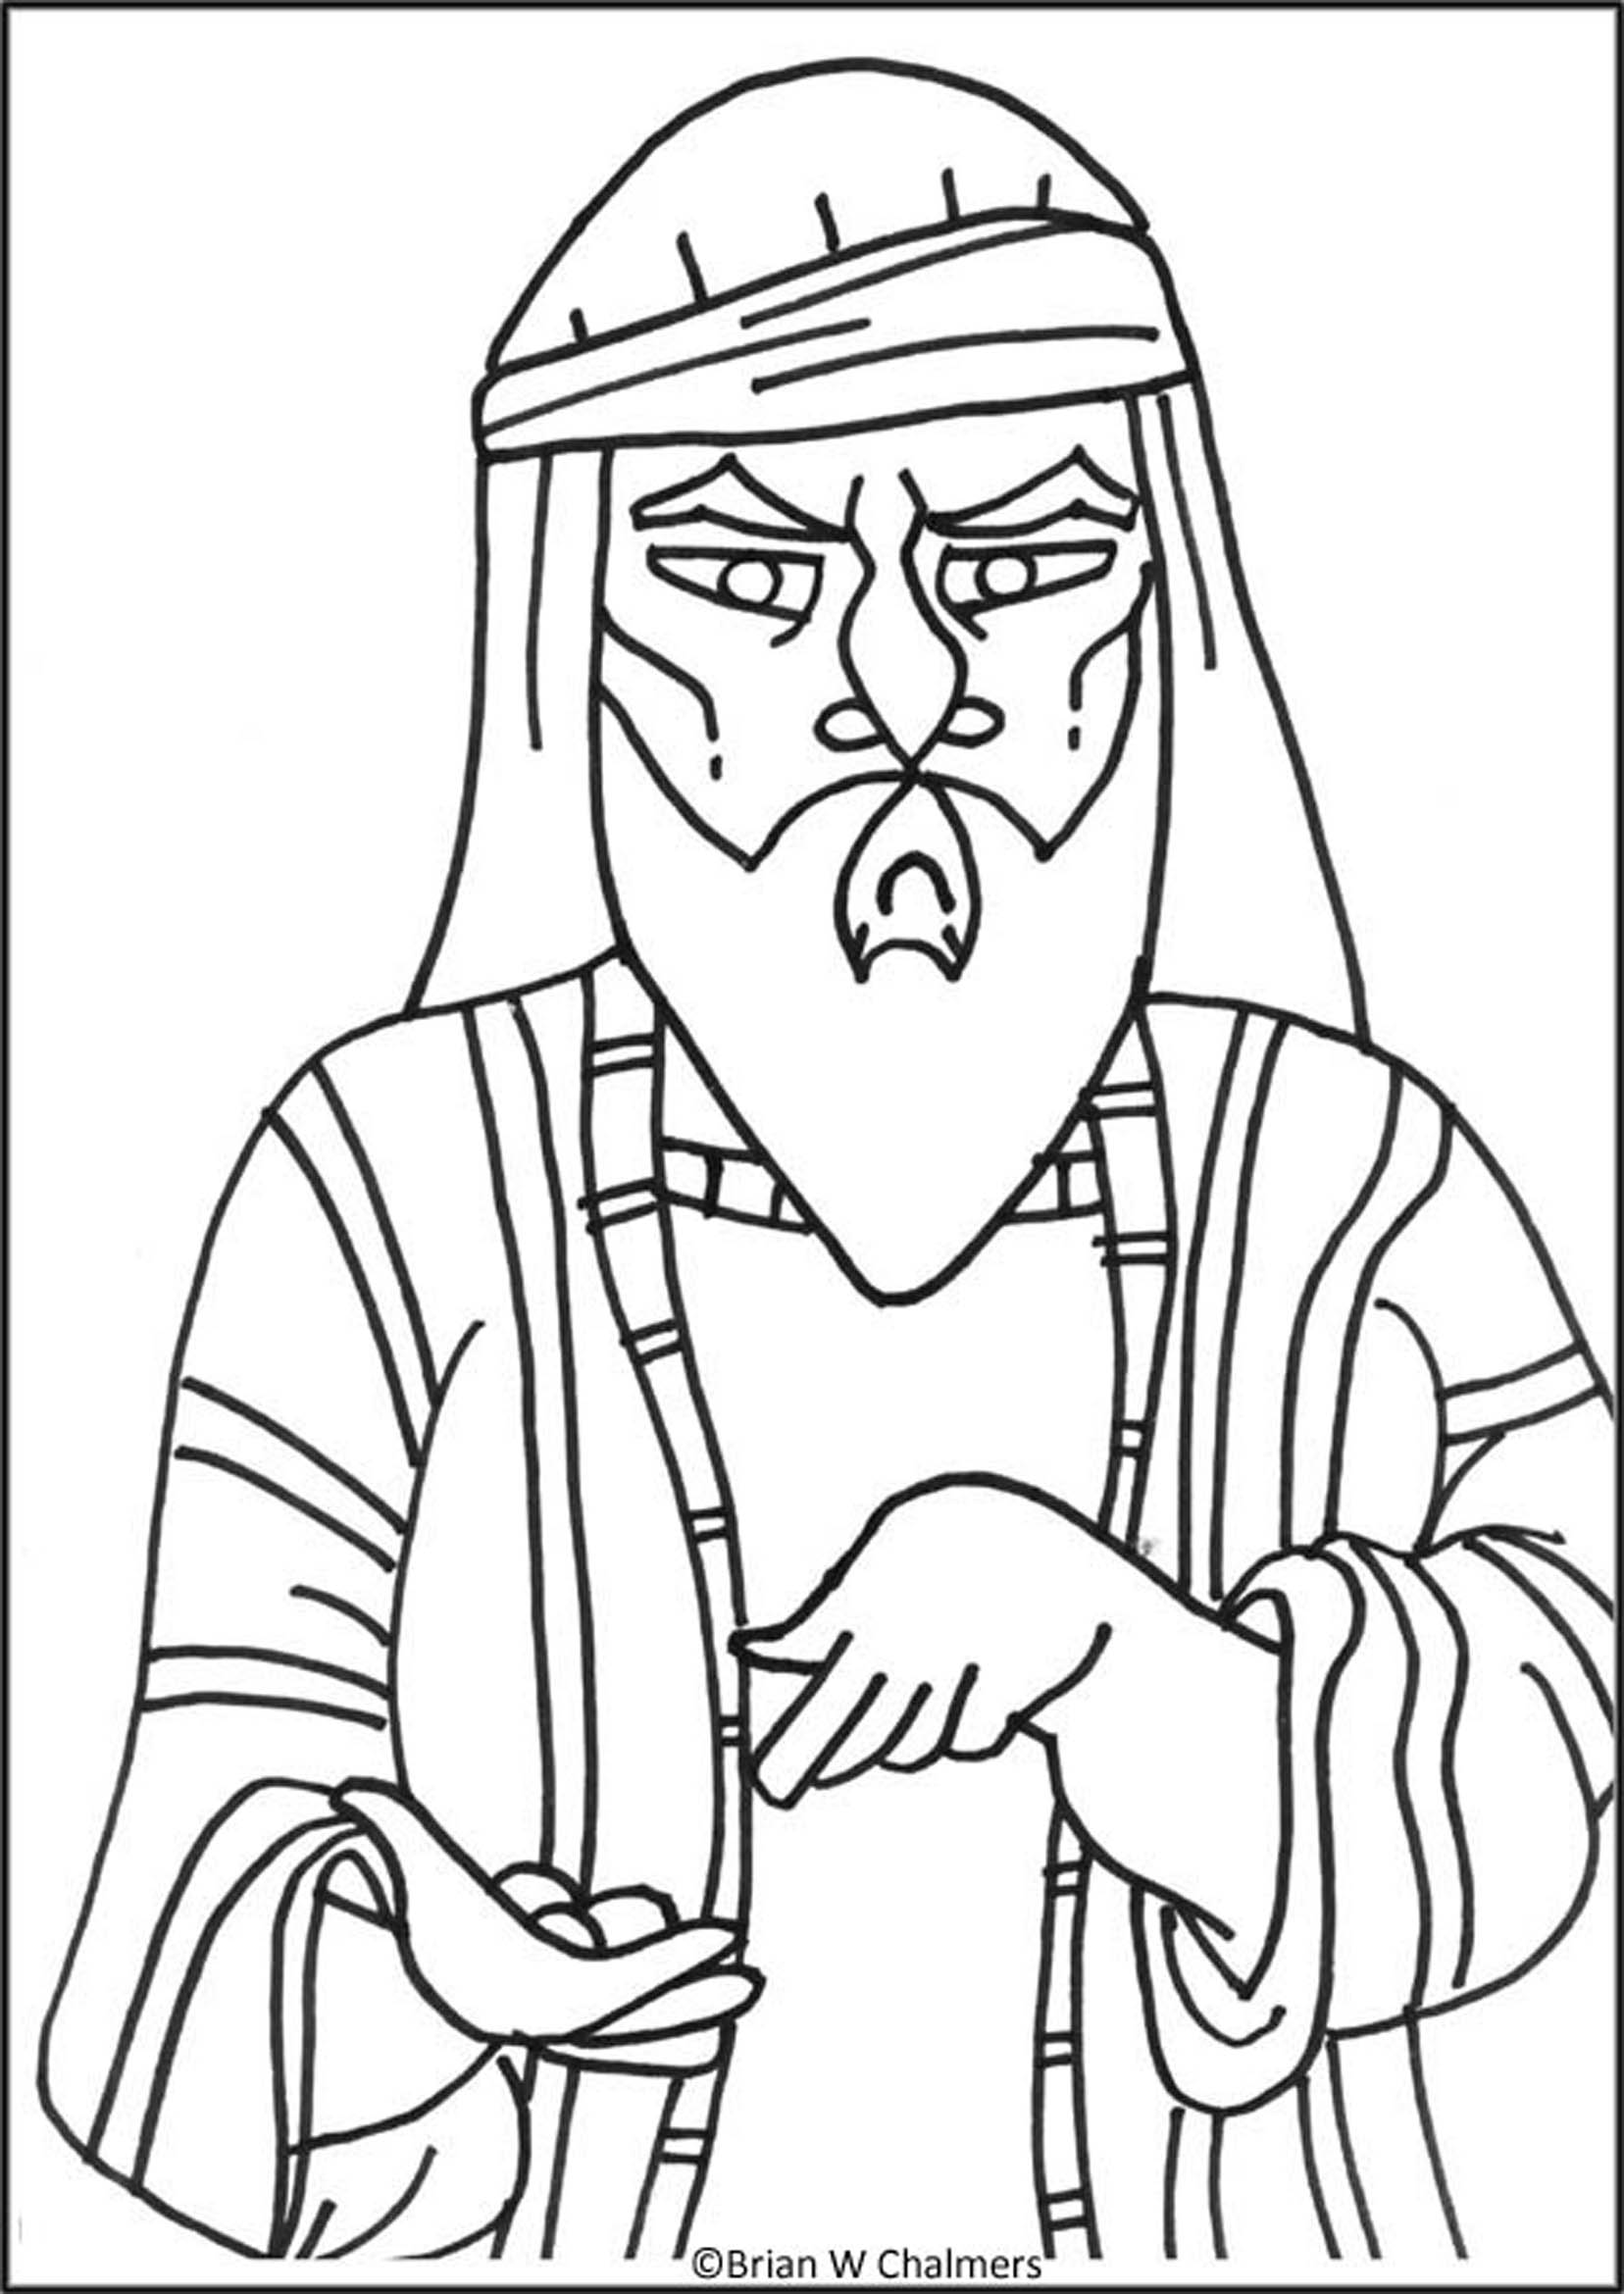 Coloring pages zacchaeus - Zacchaeus Coloring Page